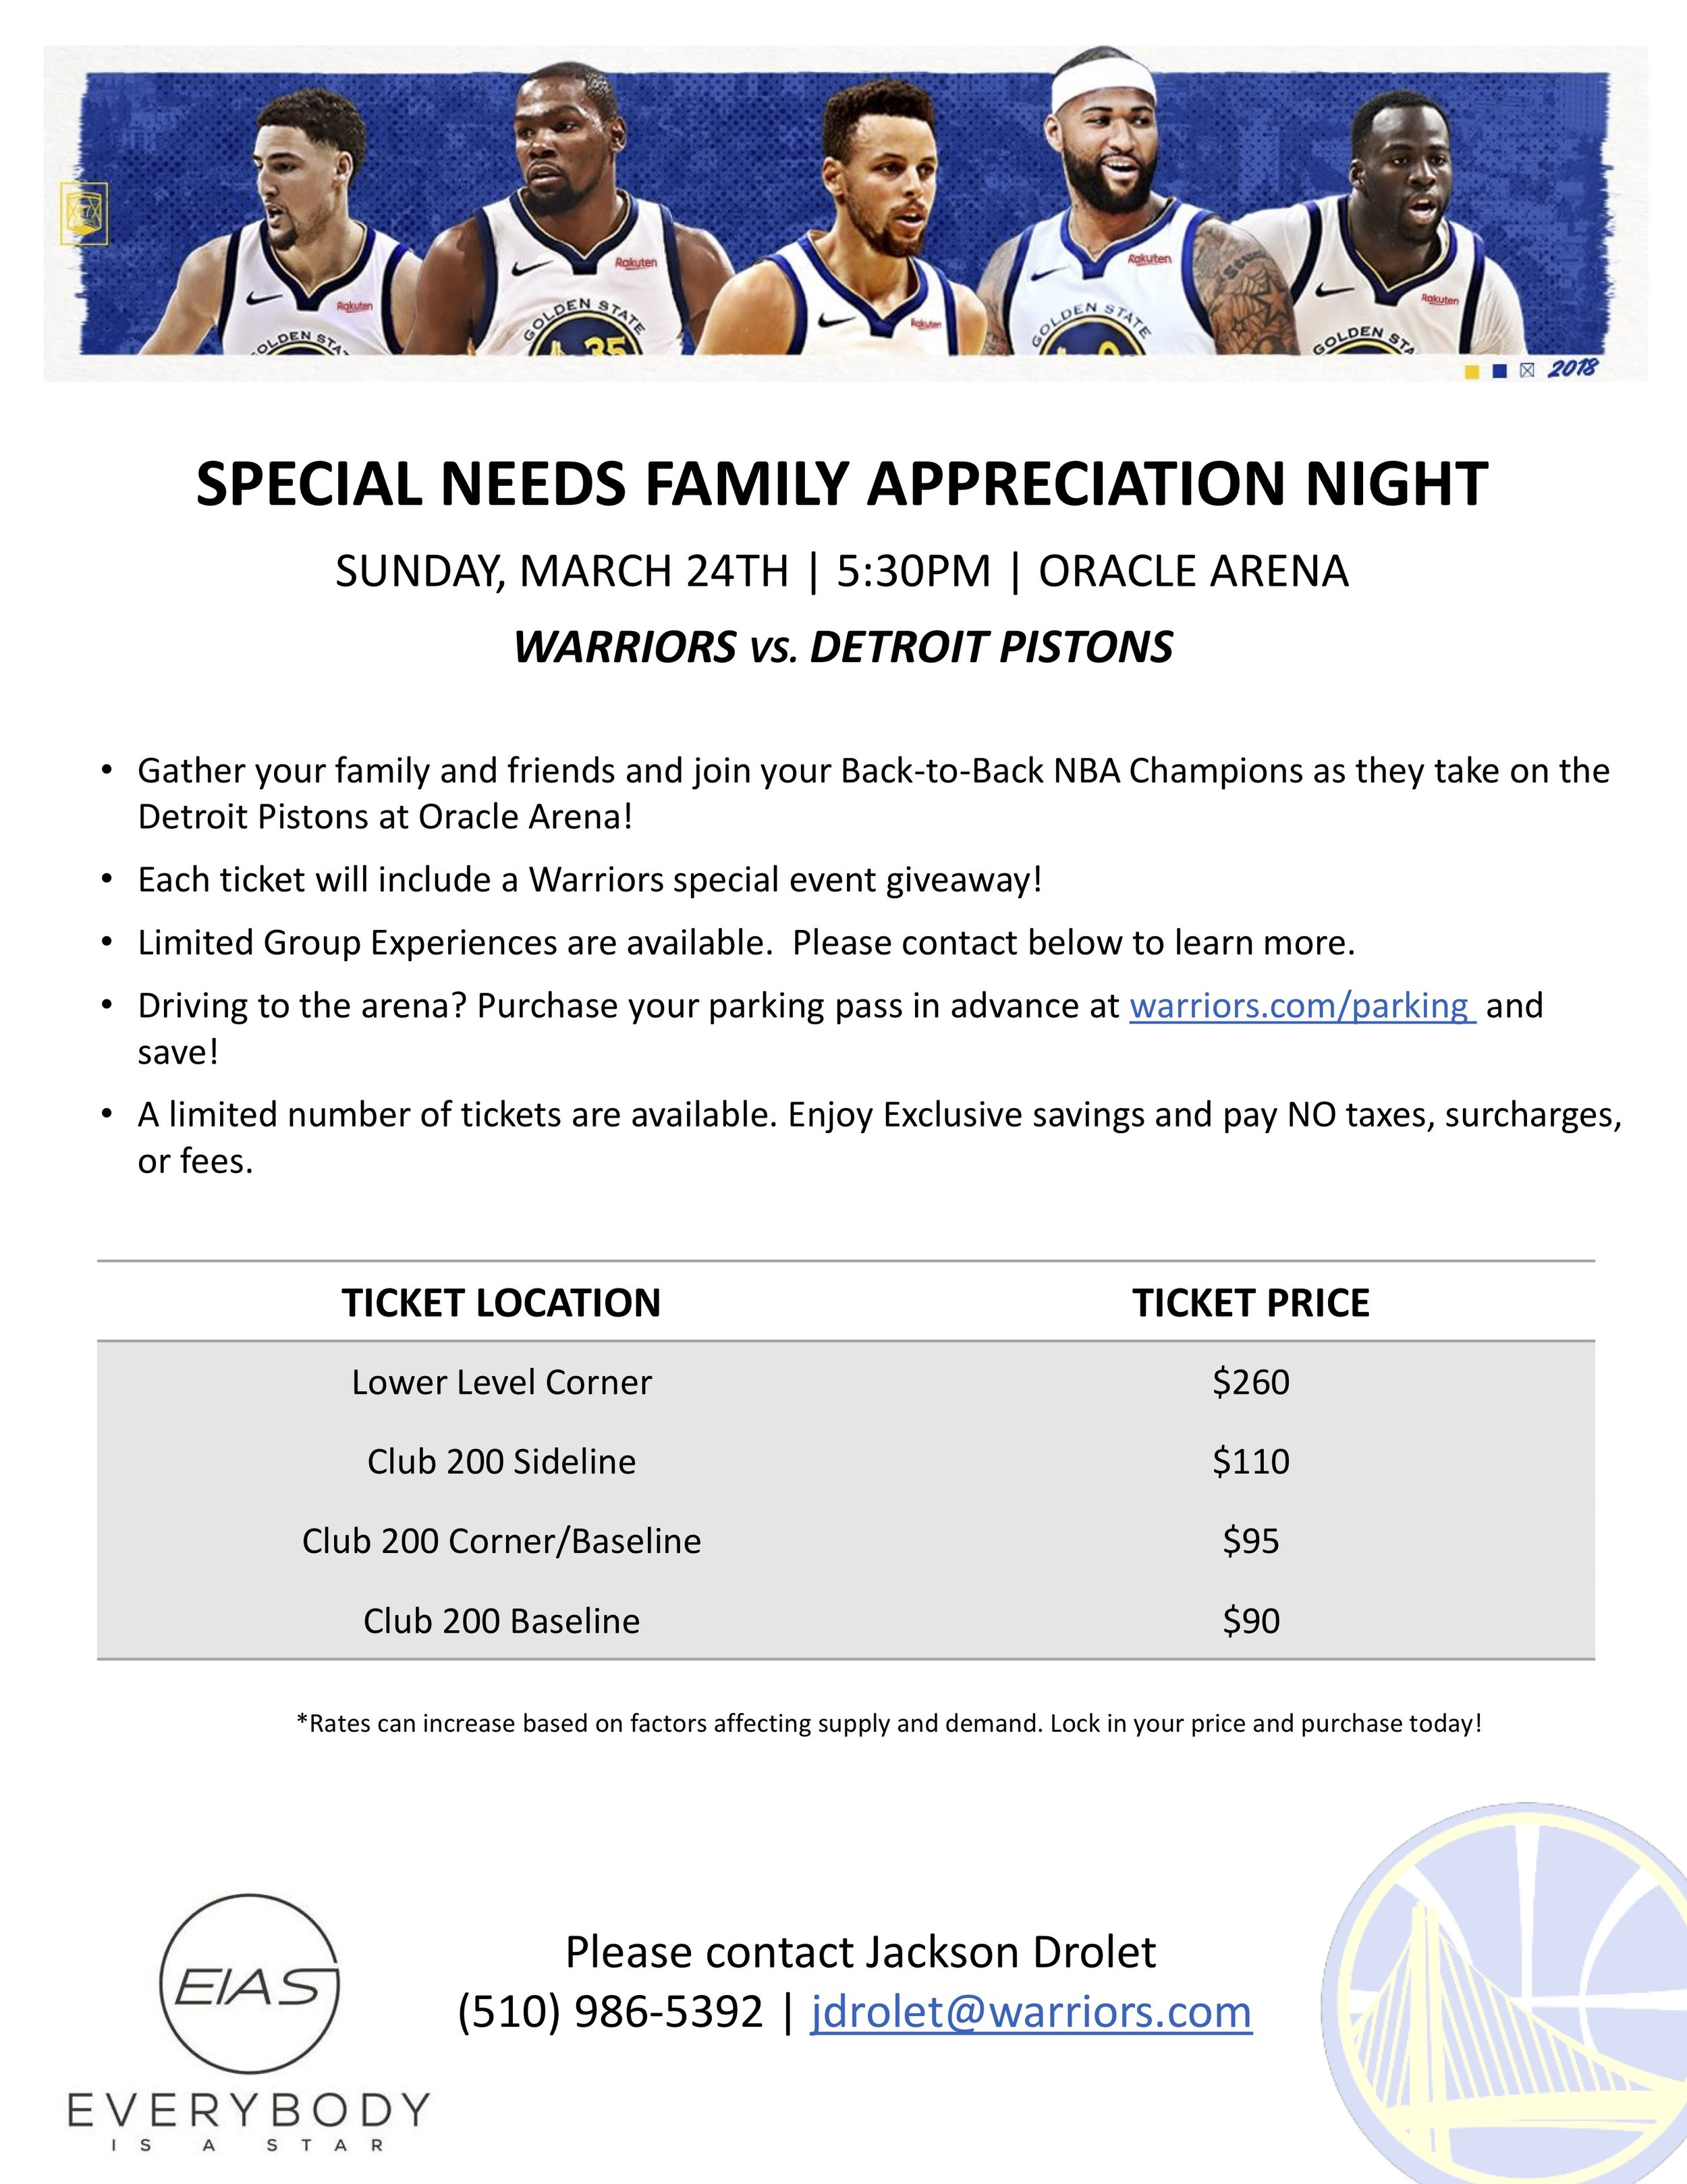 Warriors Special Needs Night  3.24.19 promo flyer .jpg